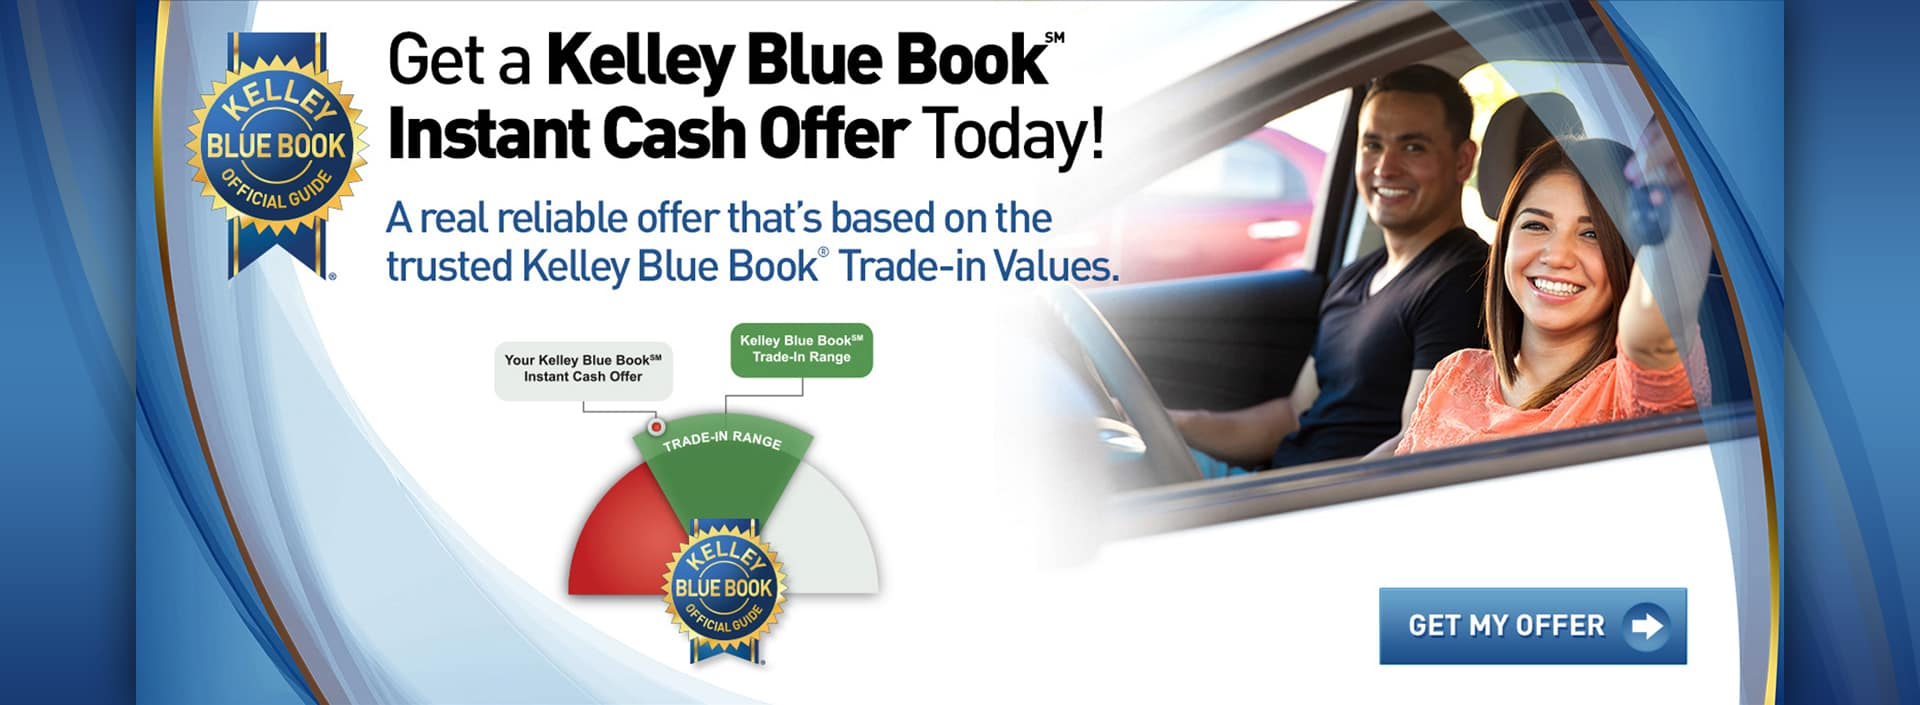 KBB Instant Cash Offer graphic